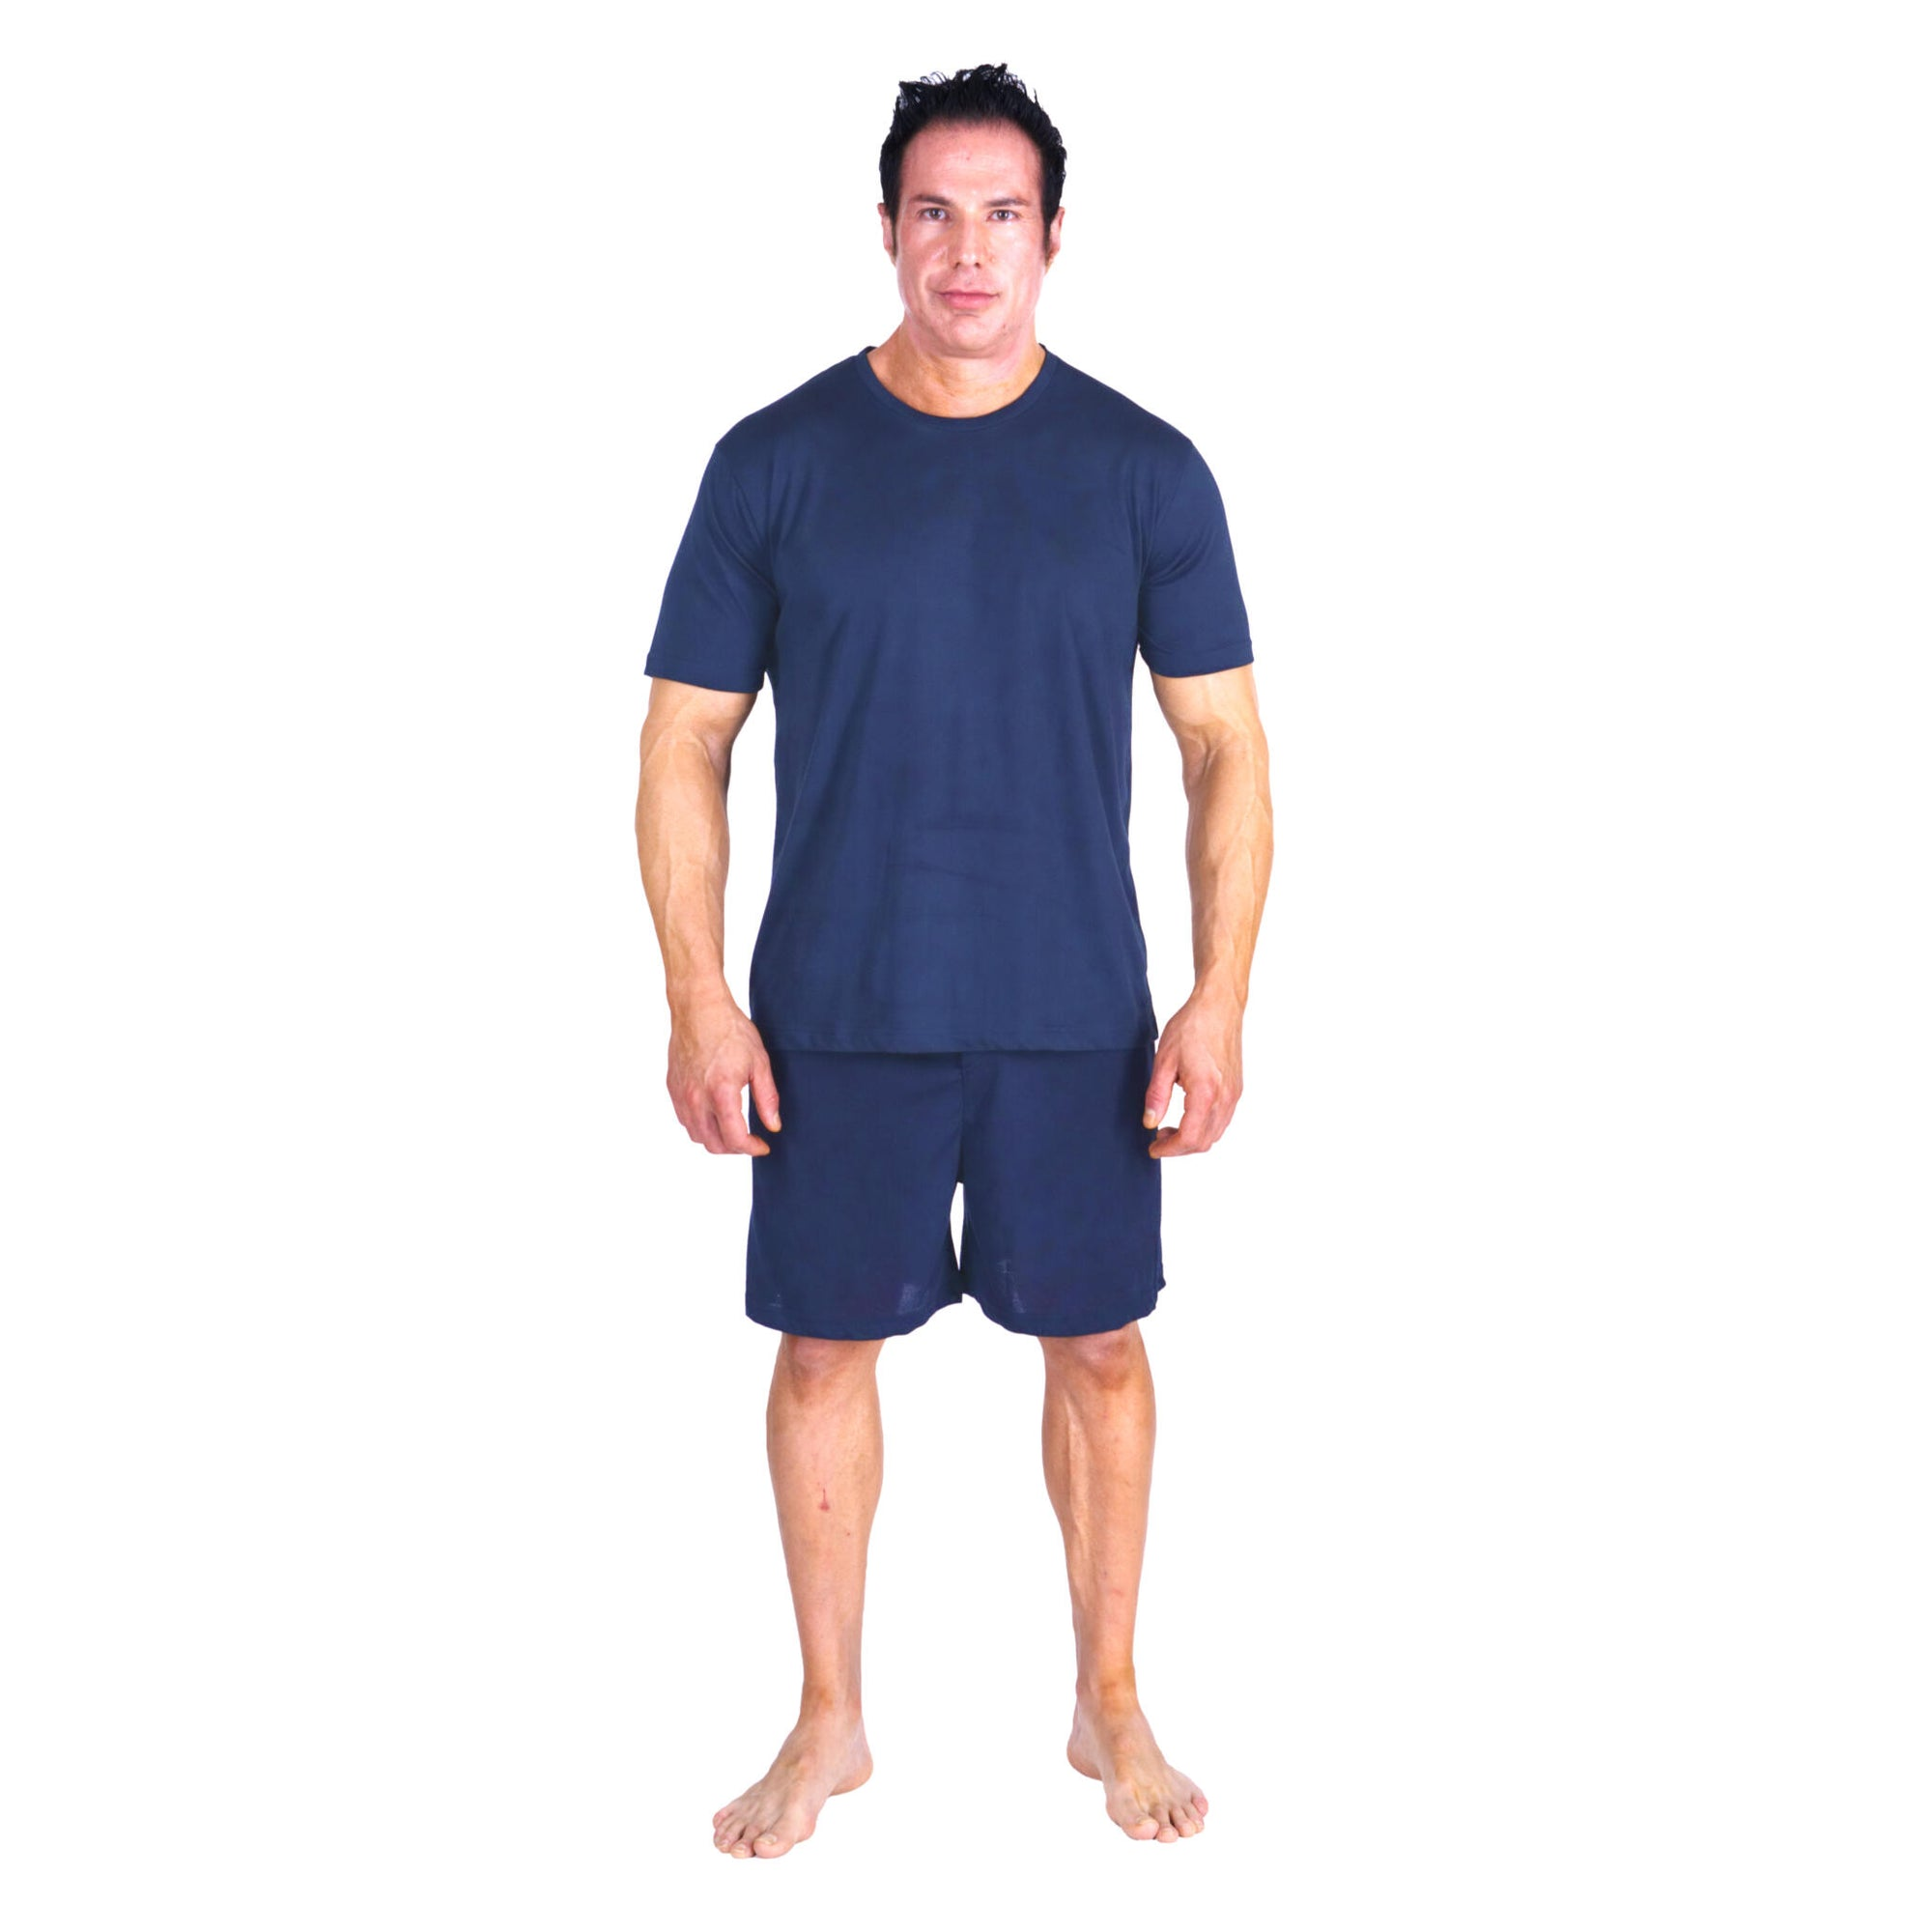 A man standing wearing moisture wicking sleepwear & cooling pajamas